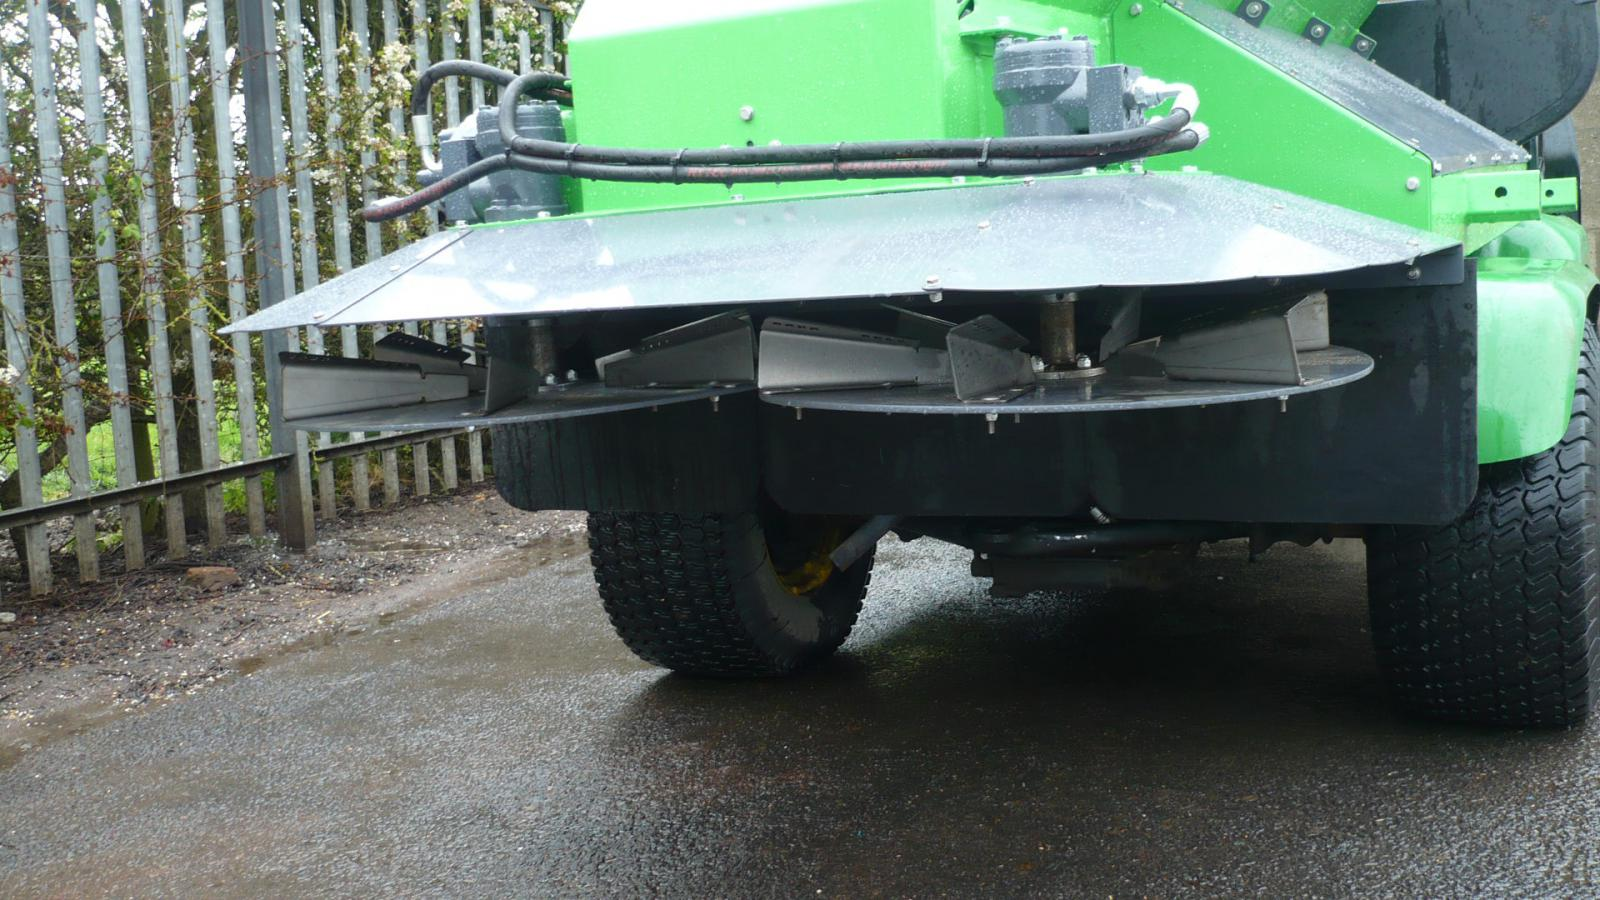 Adjustable disc position allows fine tune spreading pattern by changing the drop point on the spreading discs on this STARGREEN UTV Demount Turf Care Top Dresser